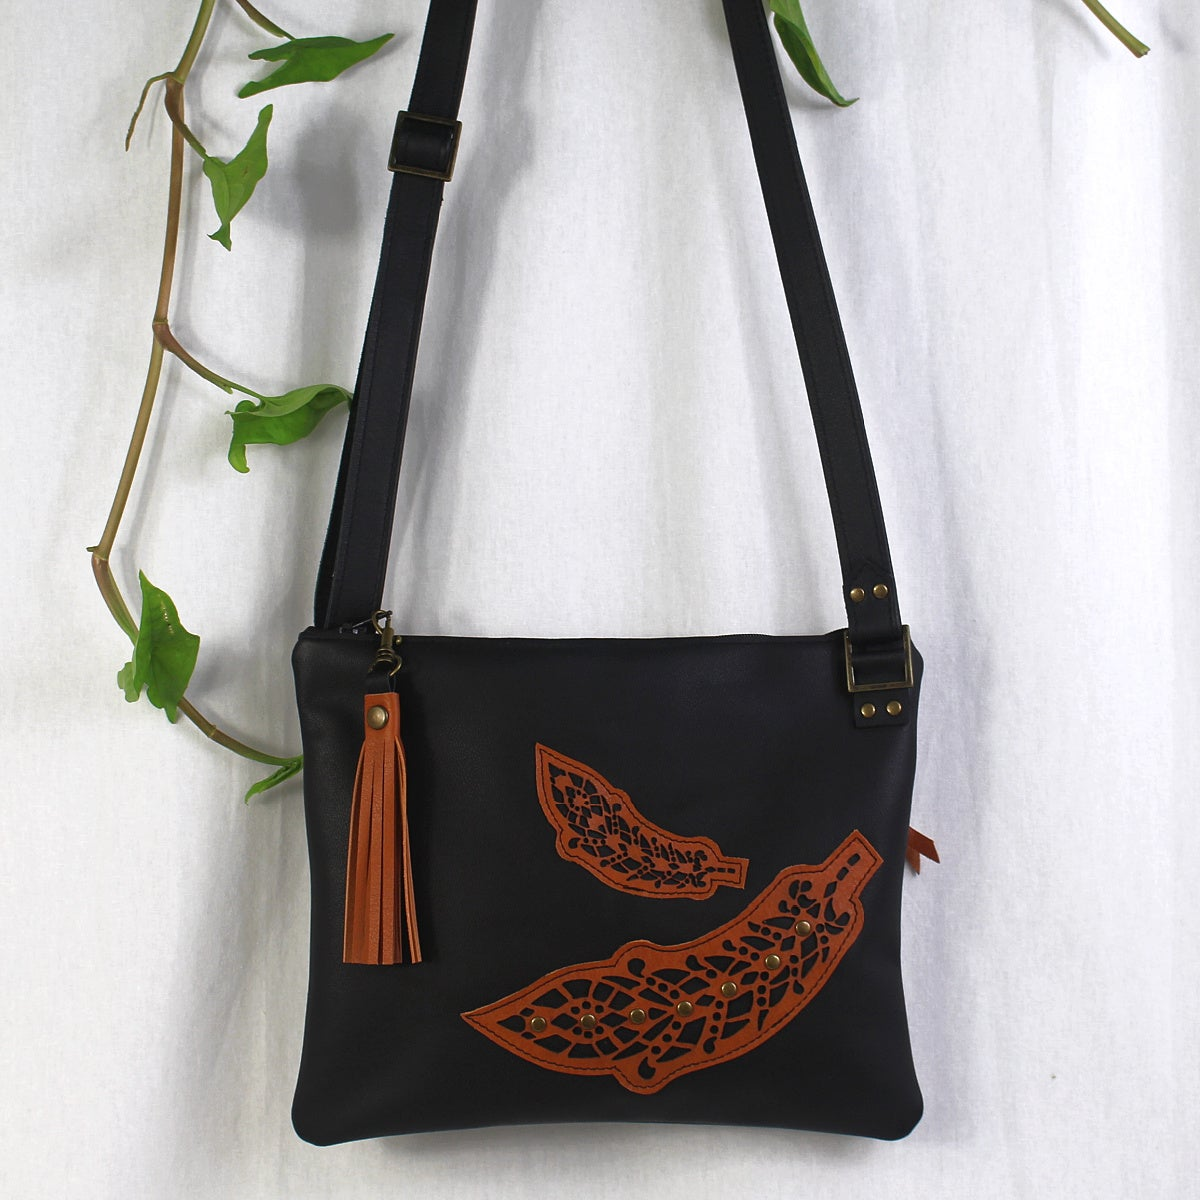 Image of Leather Horizon Bag - Feather Black & Tan